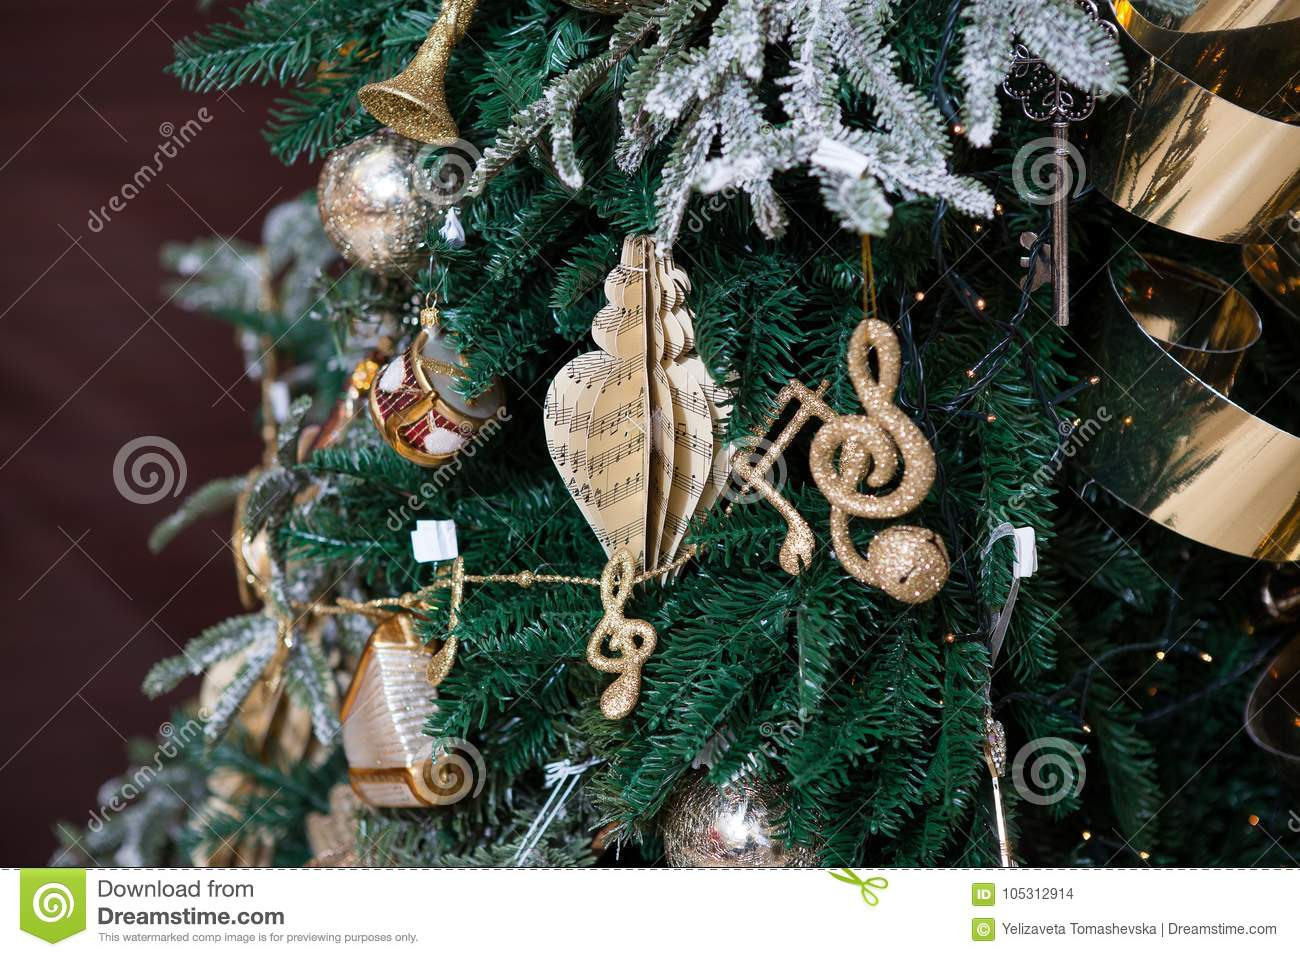 music christmas tree decorations